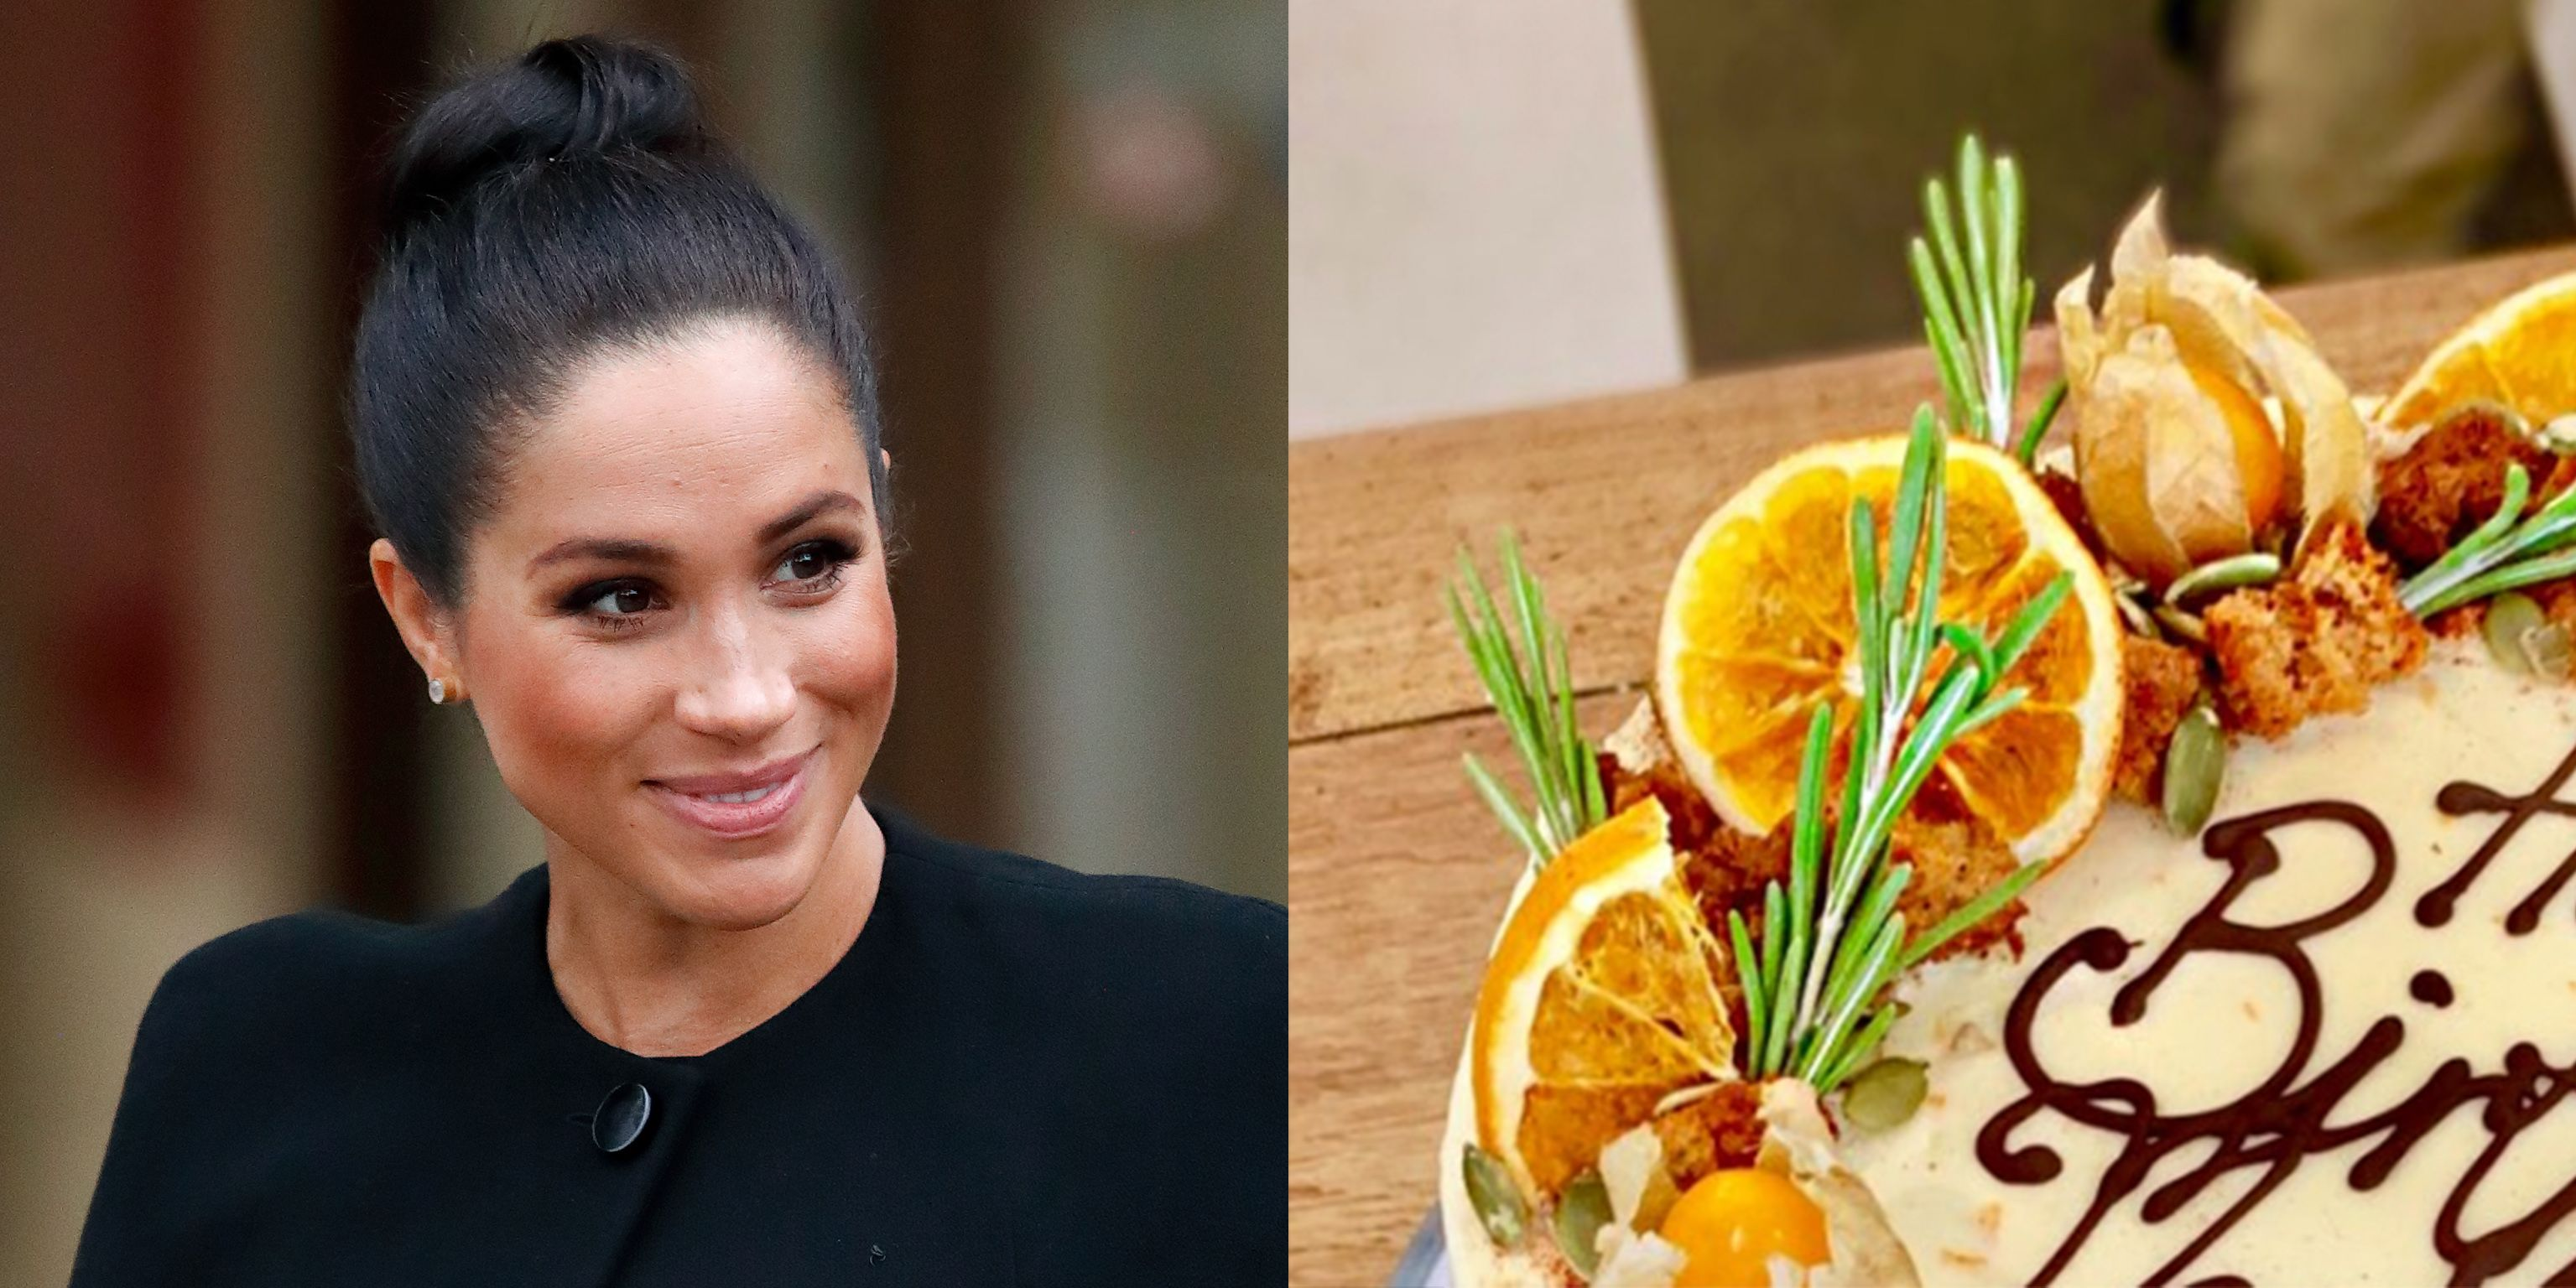 Meghan Markle's Carrot Birthday Cake Comes From A Bakery That Trains Women In Need